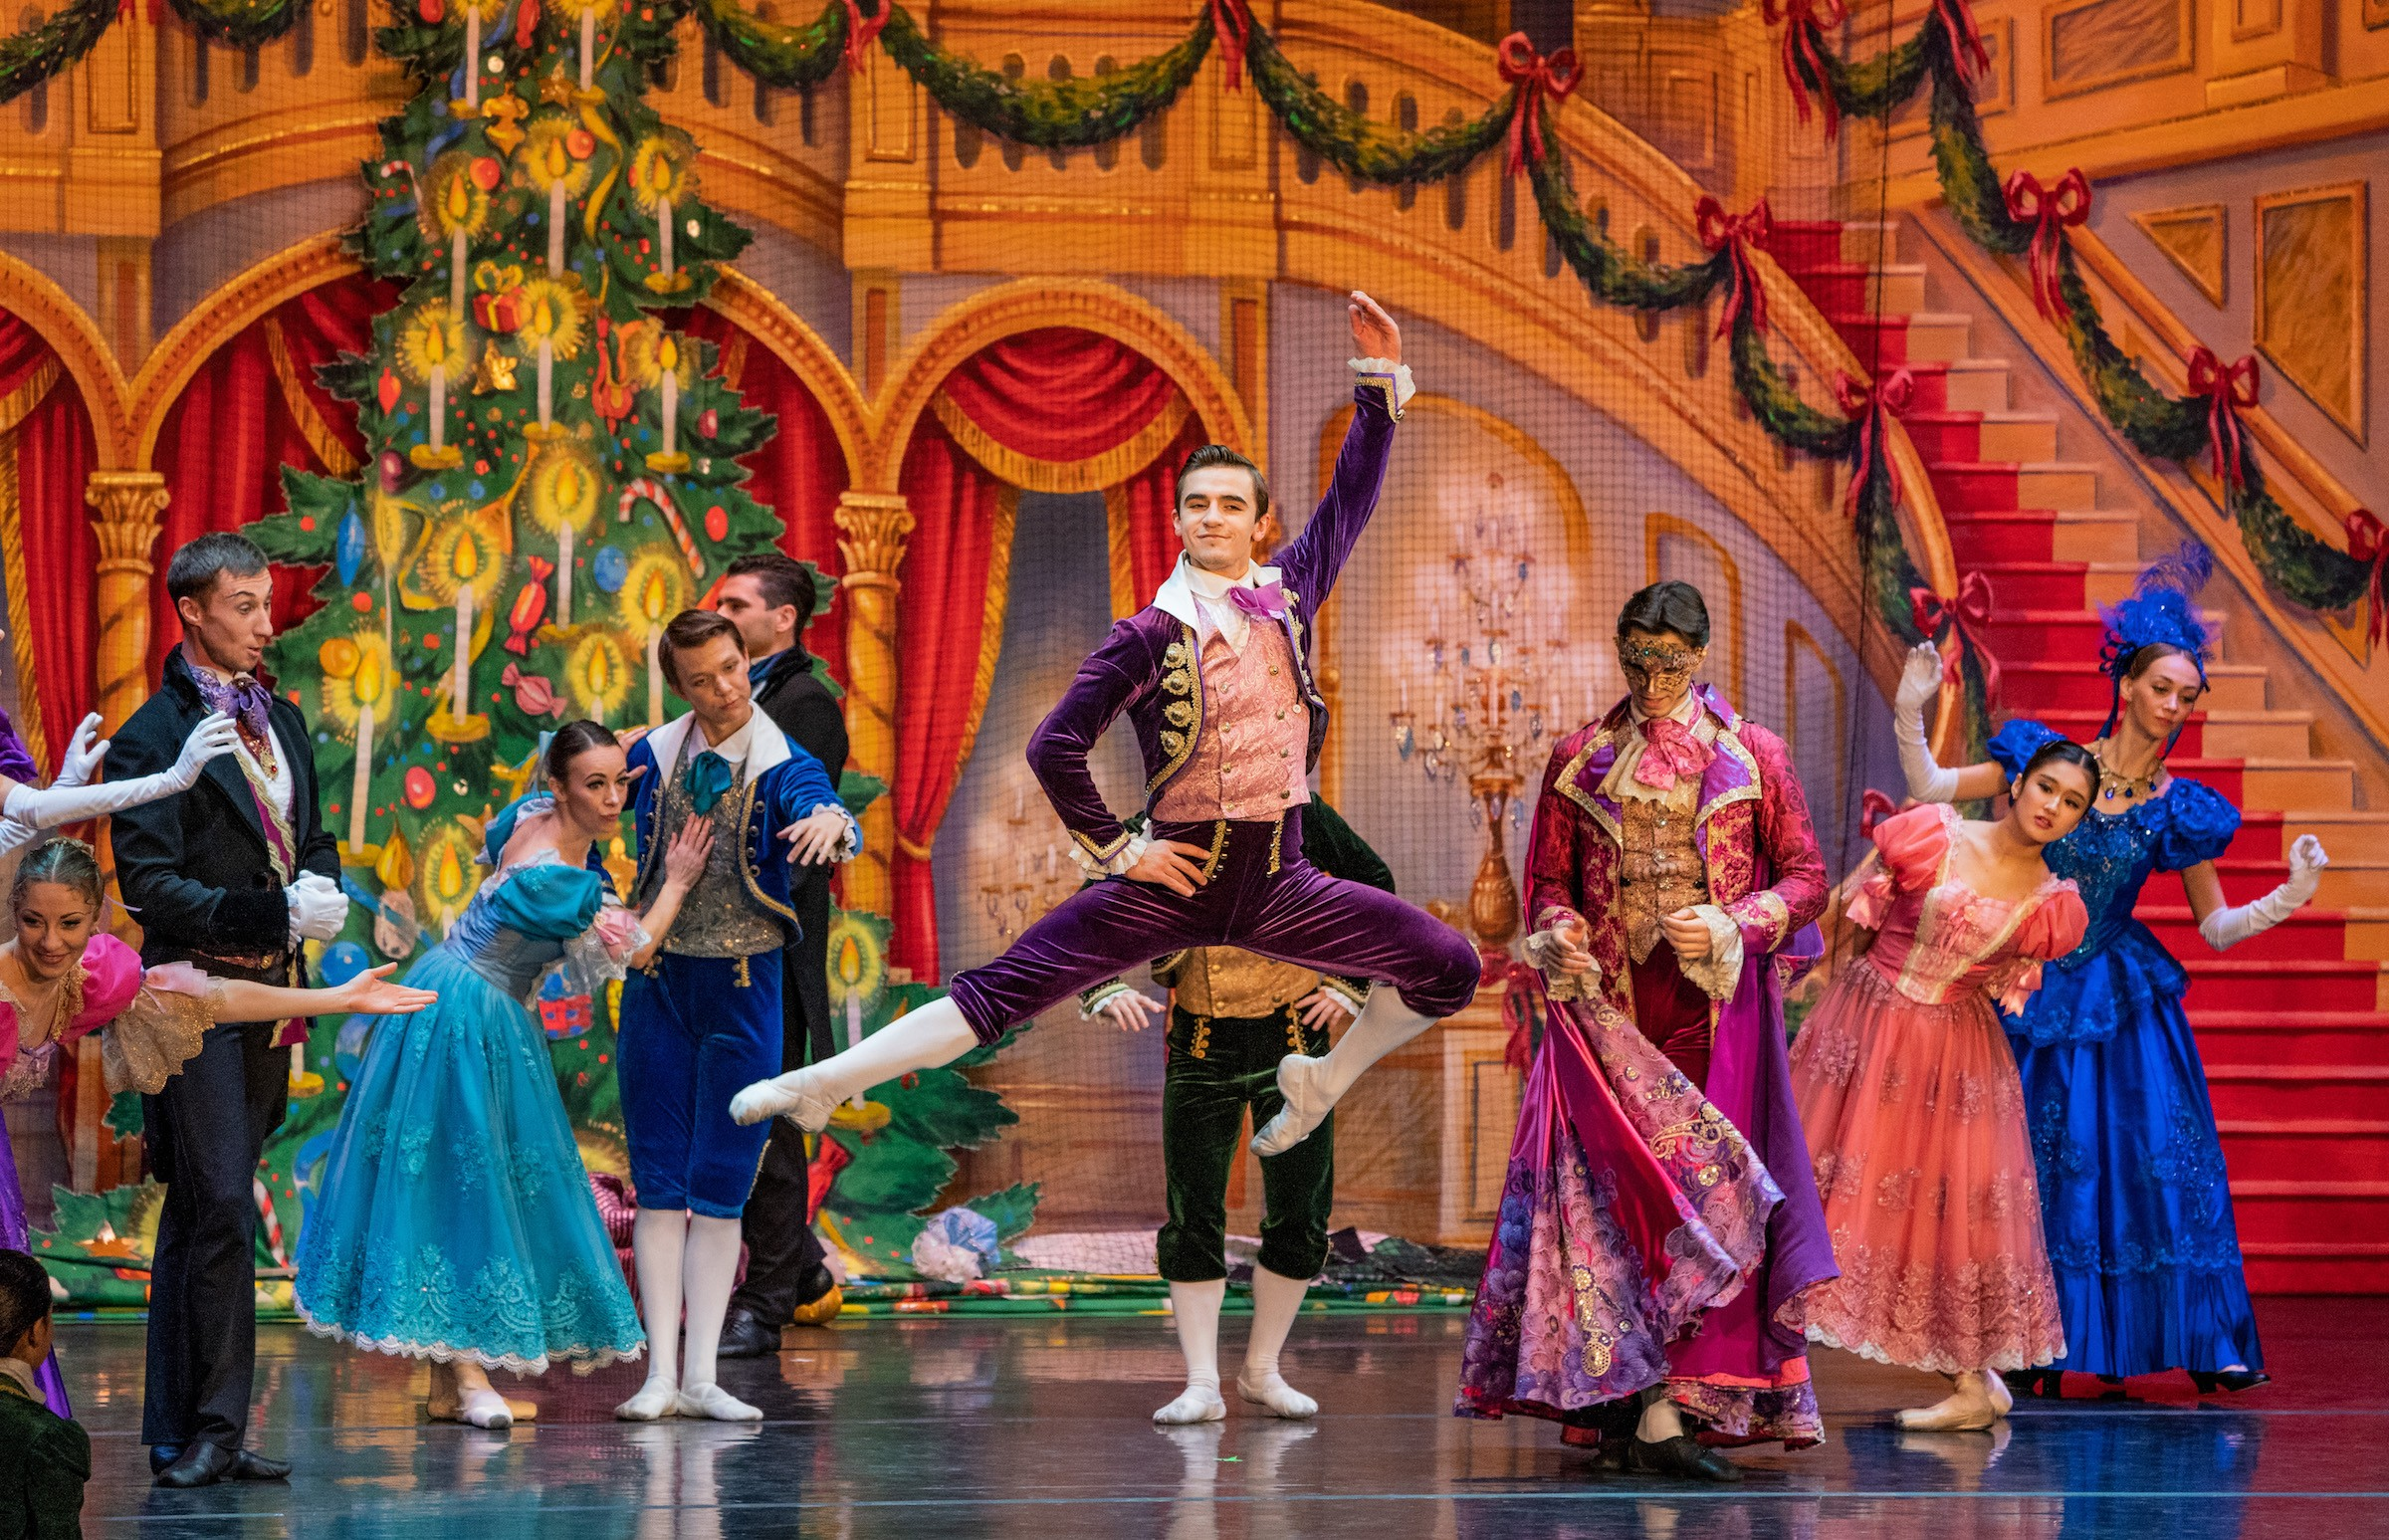 what christmas-themed ballet premiered in russia in 1892